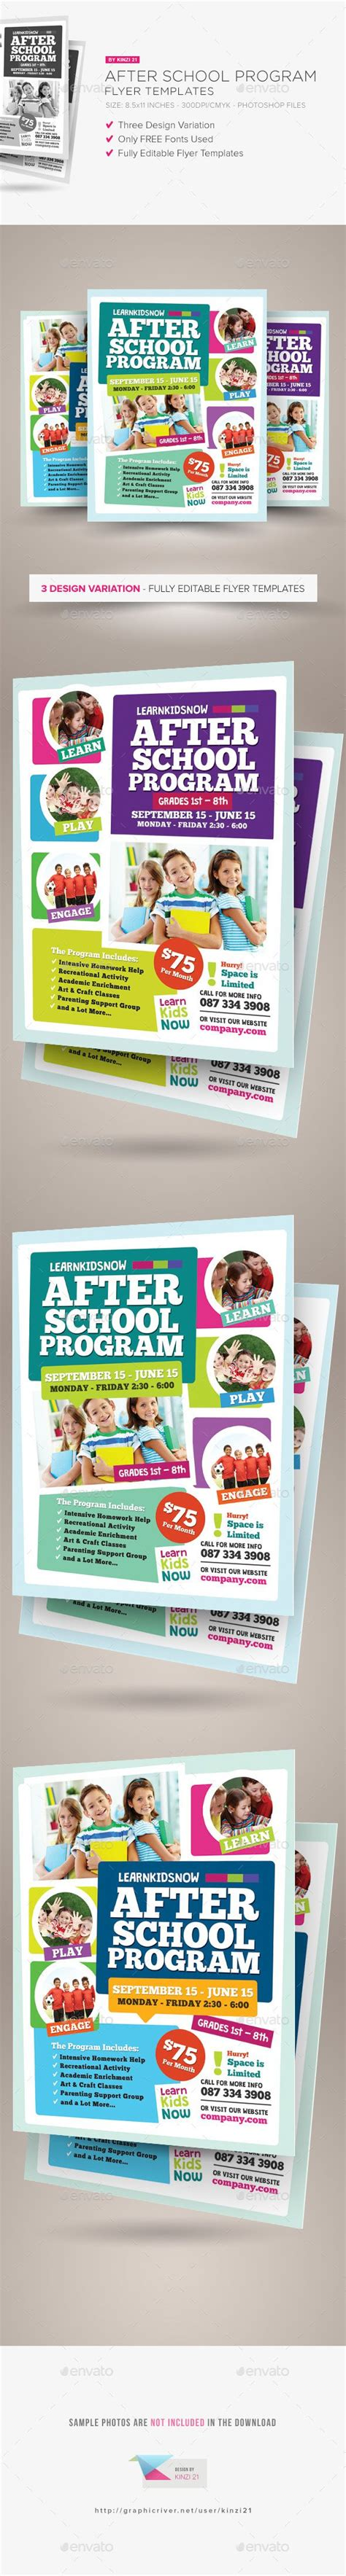 130 Best Images About Yearbook Marketing On Pinterest Advertising Flyer Template And Social Media Curriculum Flyer Template